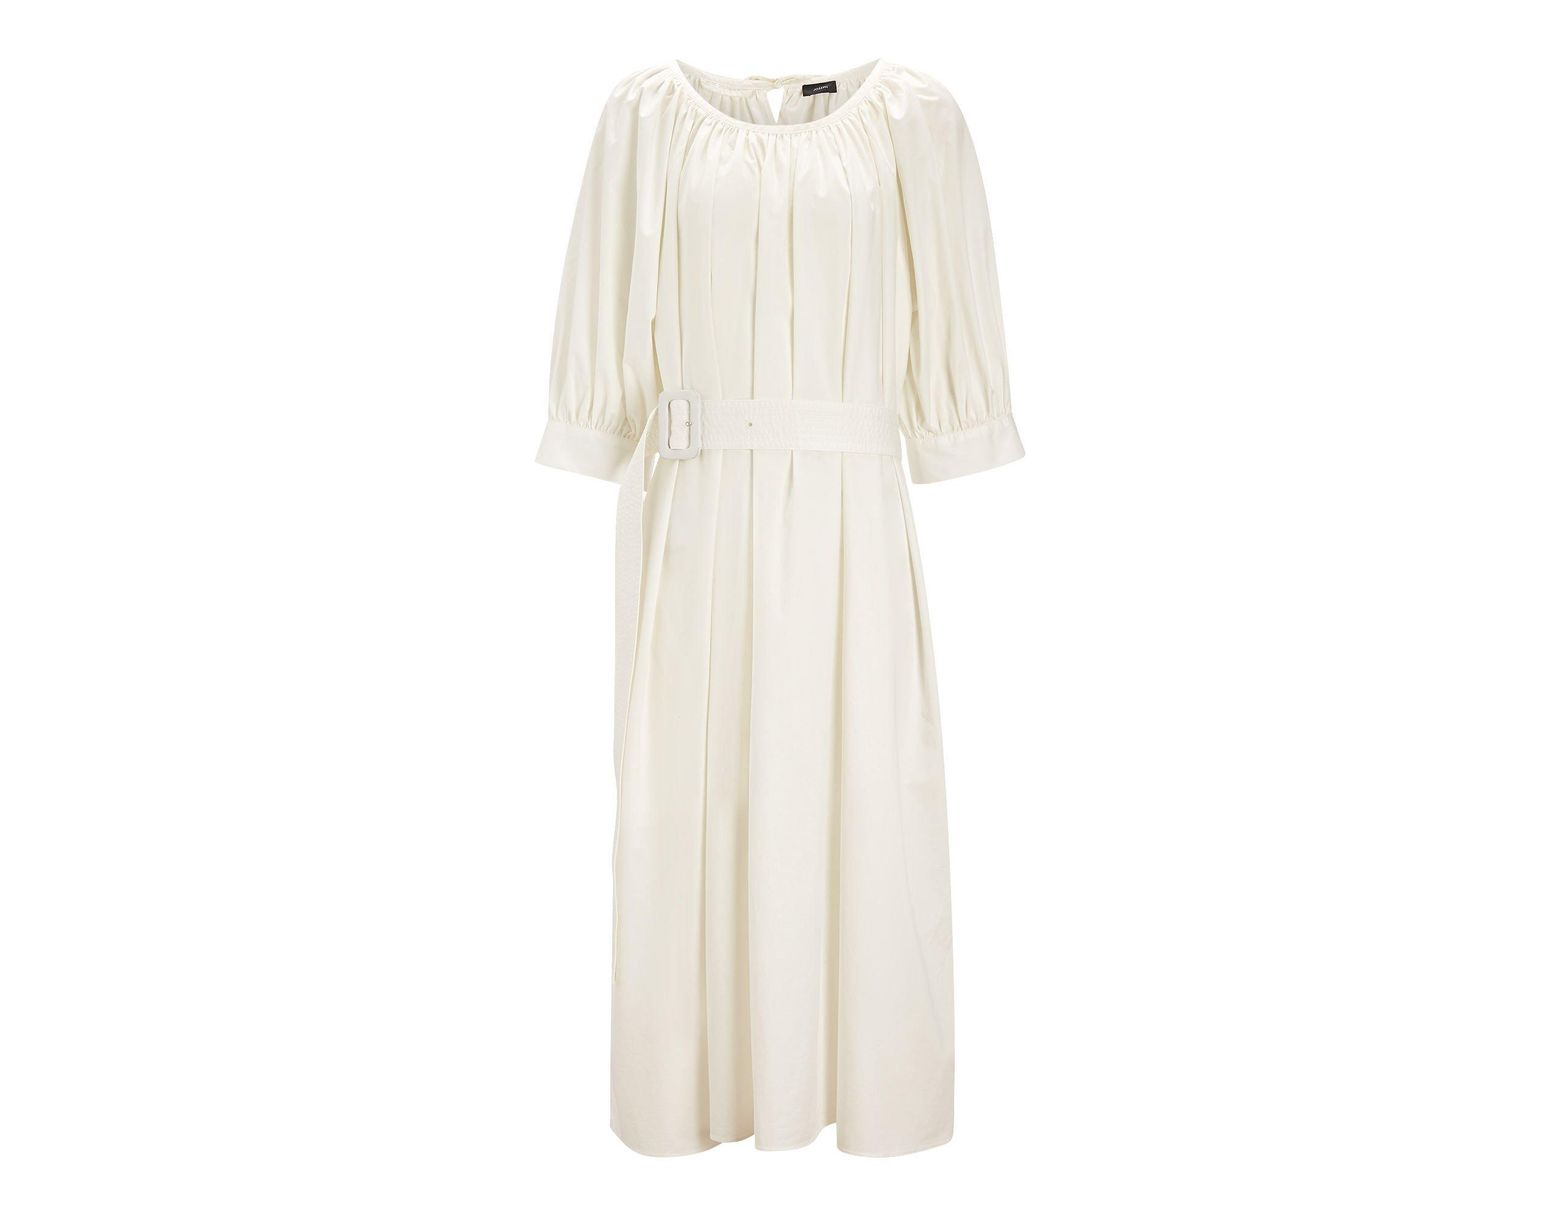 67f8d3ad826065 JOSEPH Shan Cotton Dress in White - Lyst